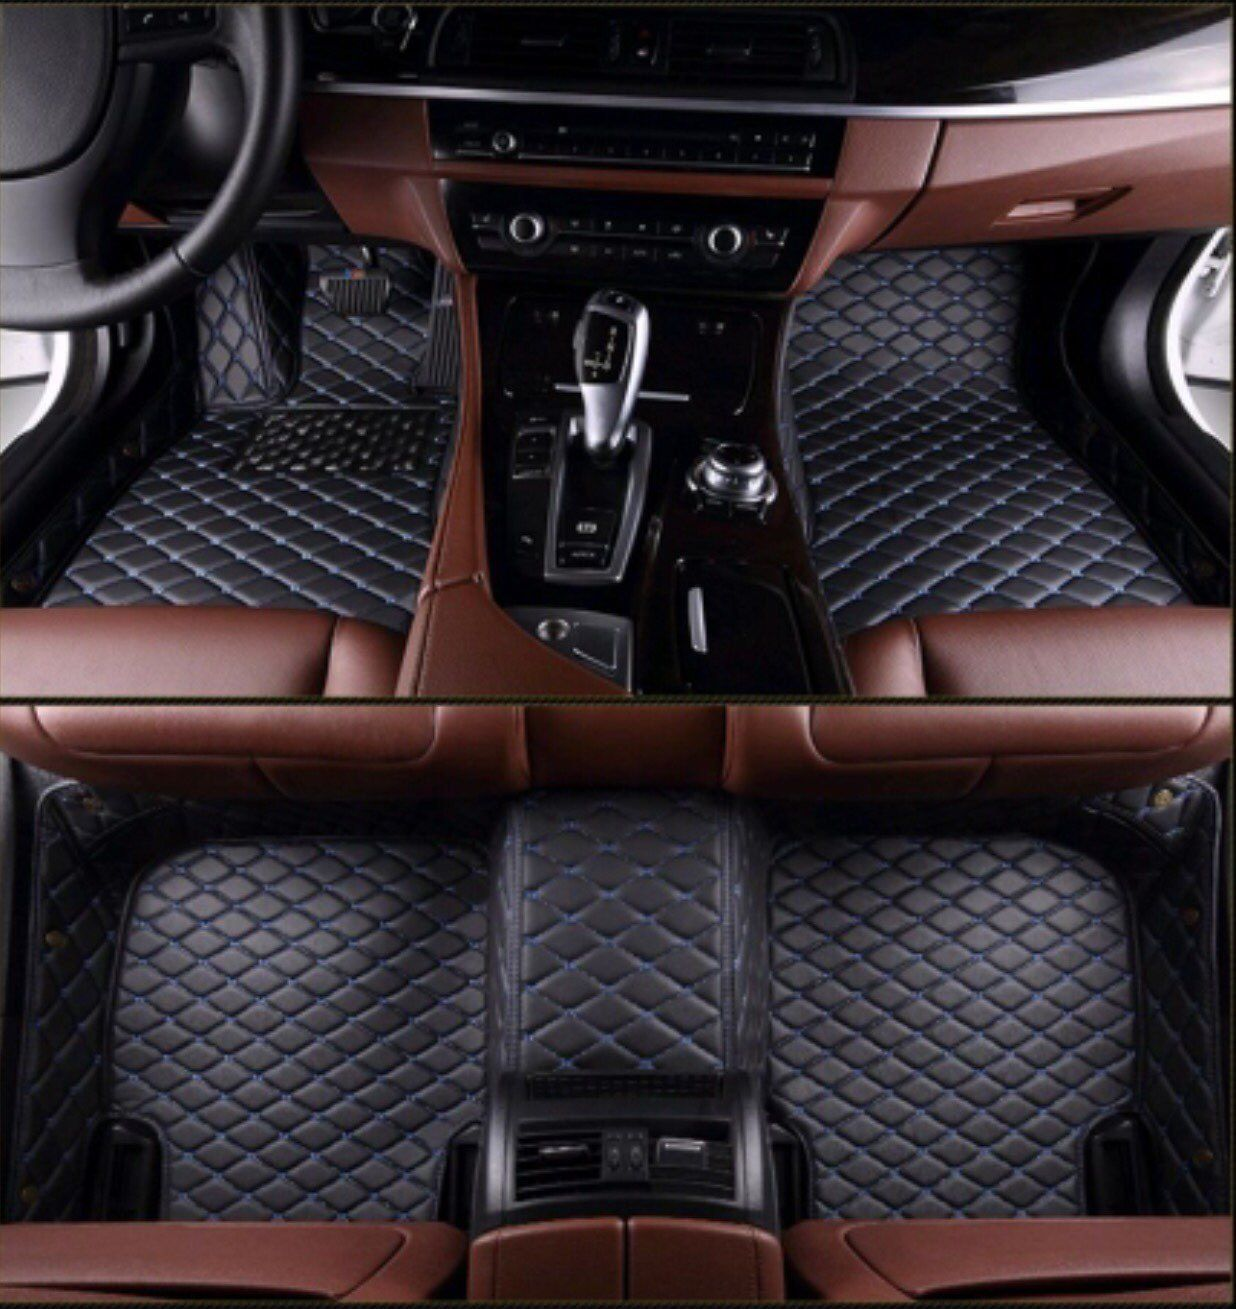 Luxury Diamond Stitched Floor Mats Black With Blue Stitching Acura Full Set Luxury Car Interior Luxury Diamonds Vw Jetta